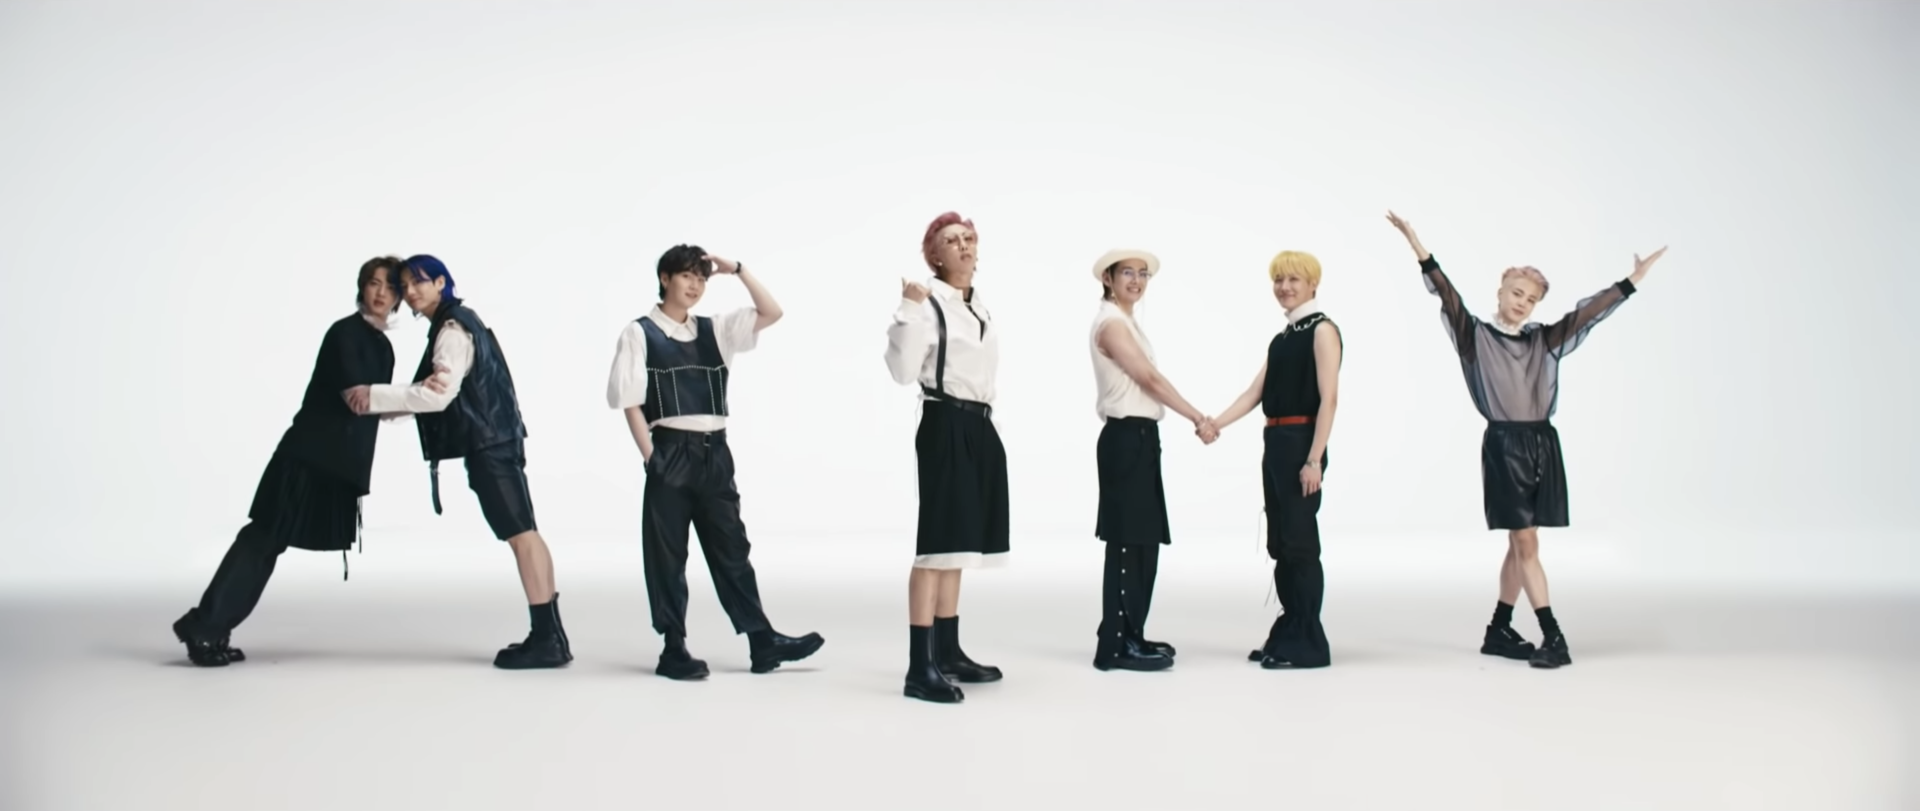 BTS' 'Butter' breaks 'Dynamite' YouTube record with 200.20 million